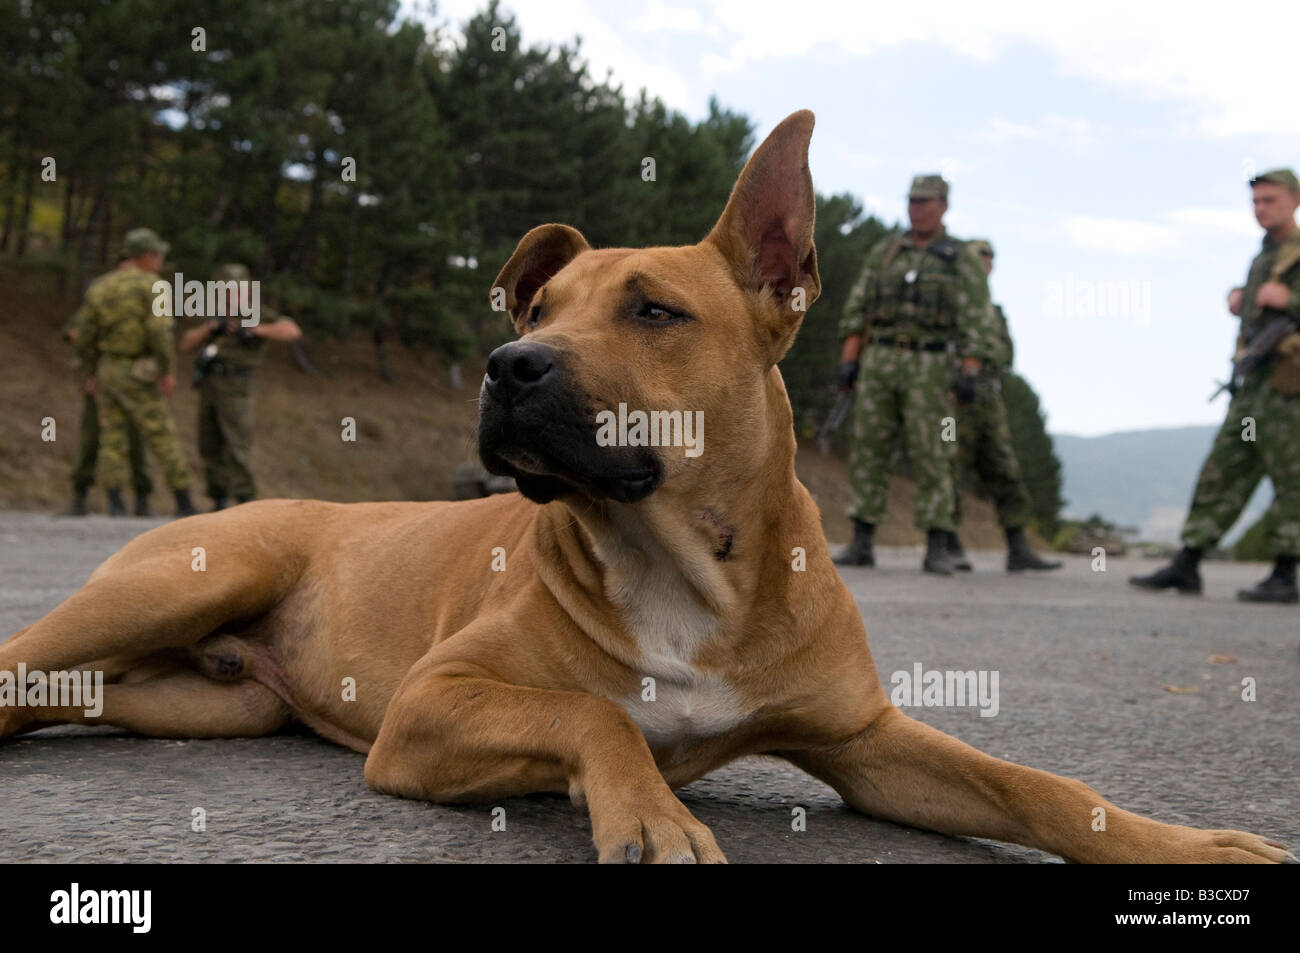 A stray dog sits amid Russian troops near the city of Gori, during the Russo-Georgian War - Stock Image